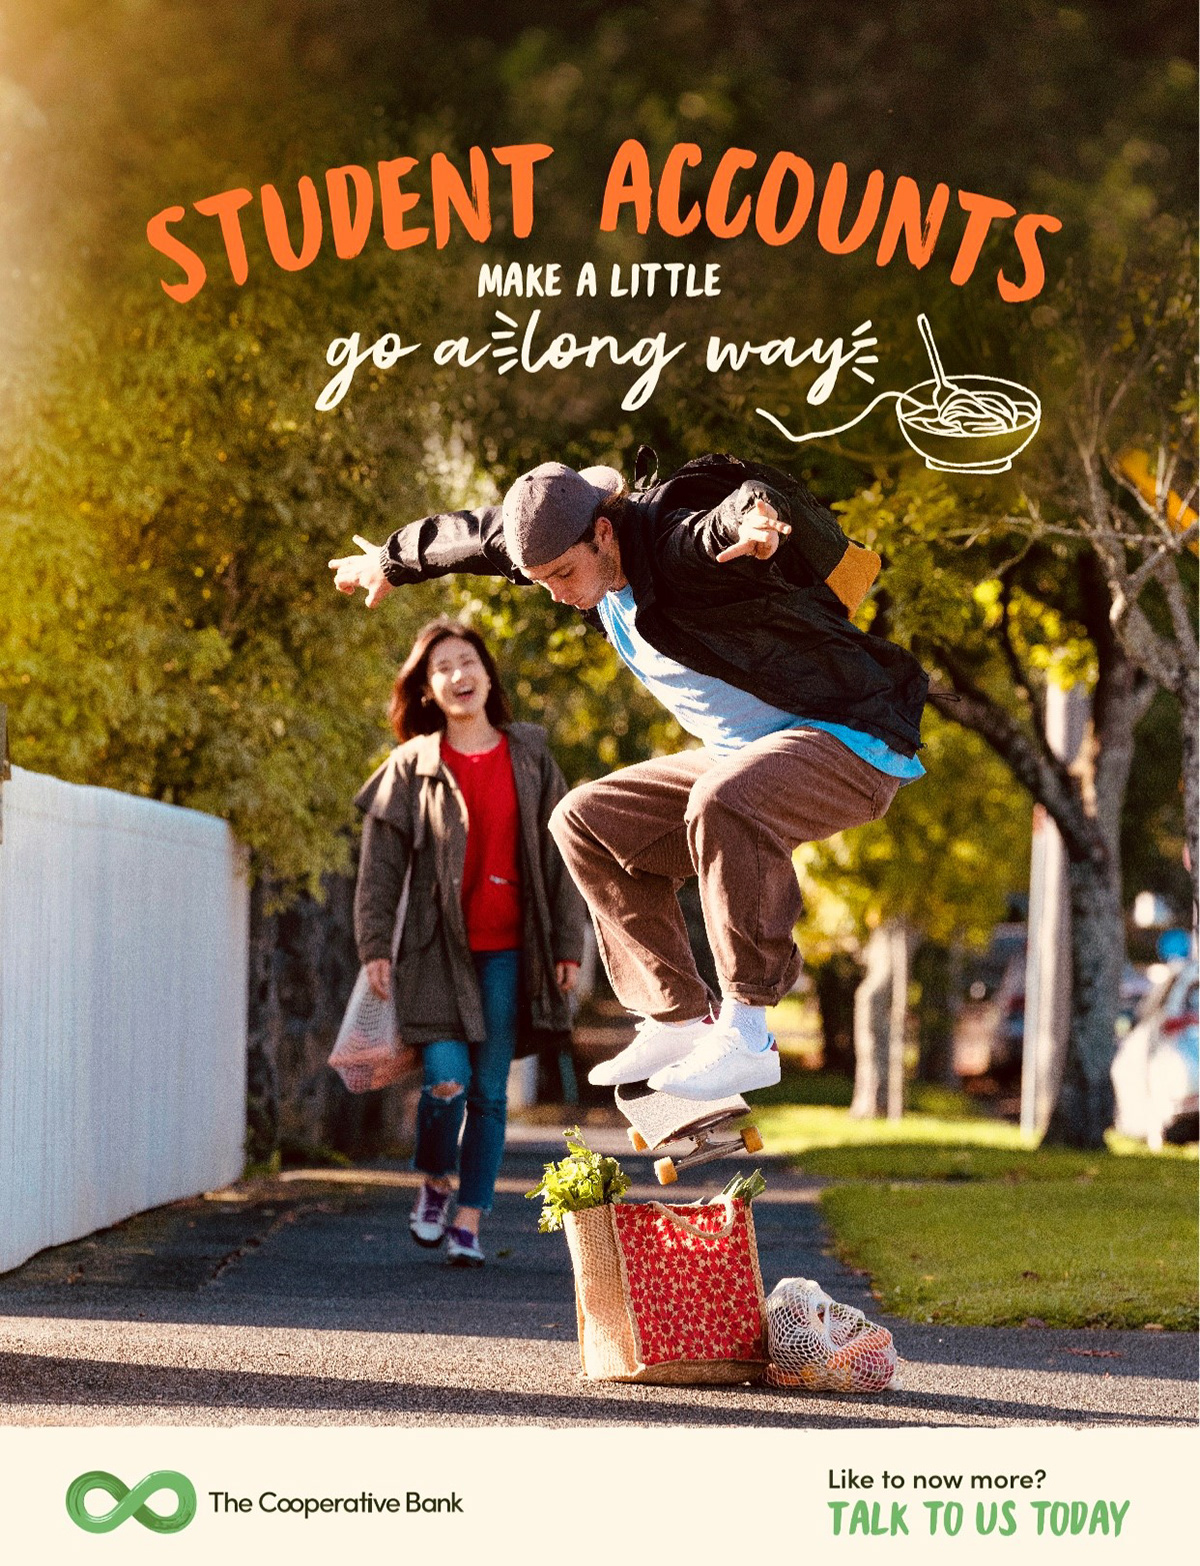 vicki leopold Photography  director coop bank nz new campaign